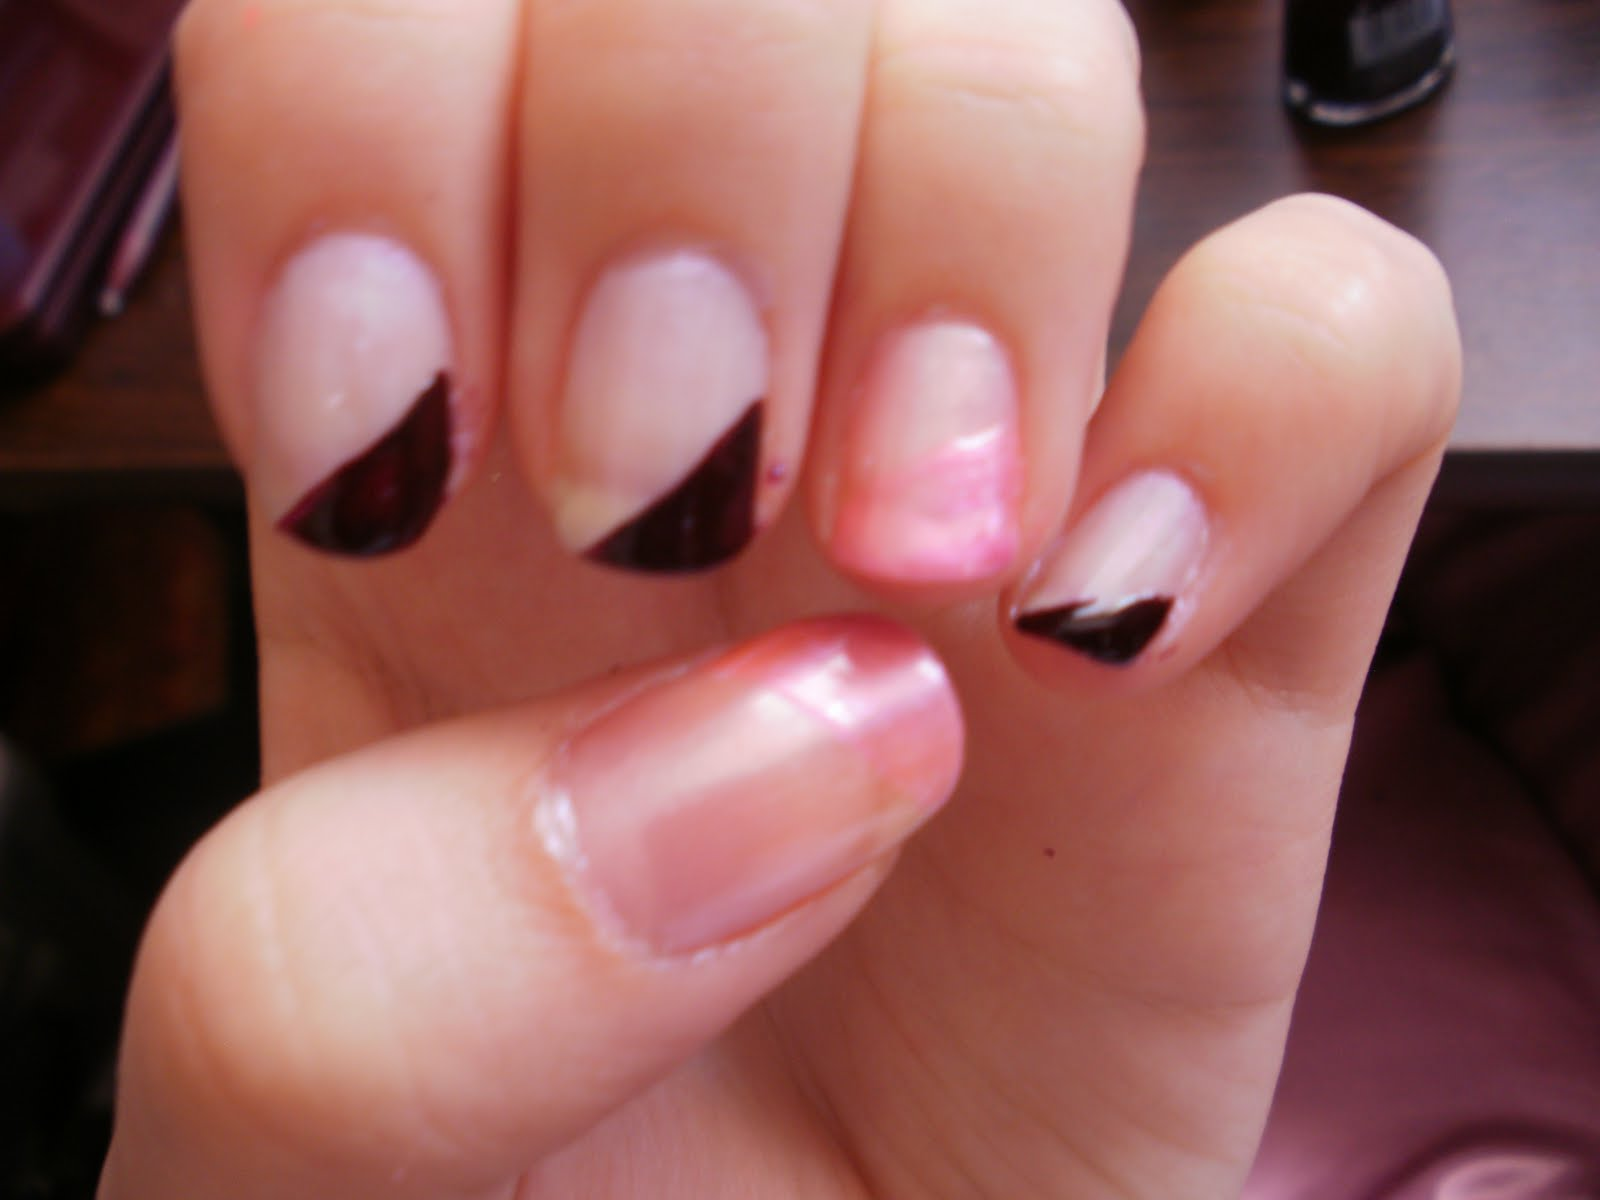 Artistry Nails: August 2011